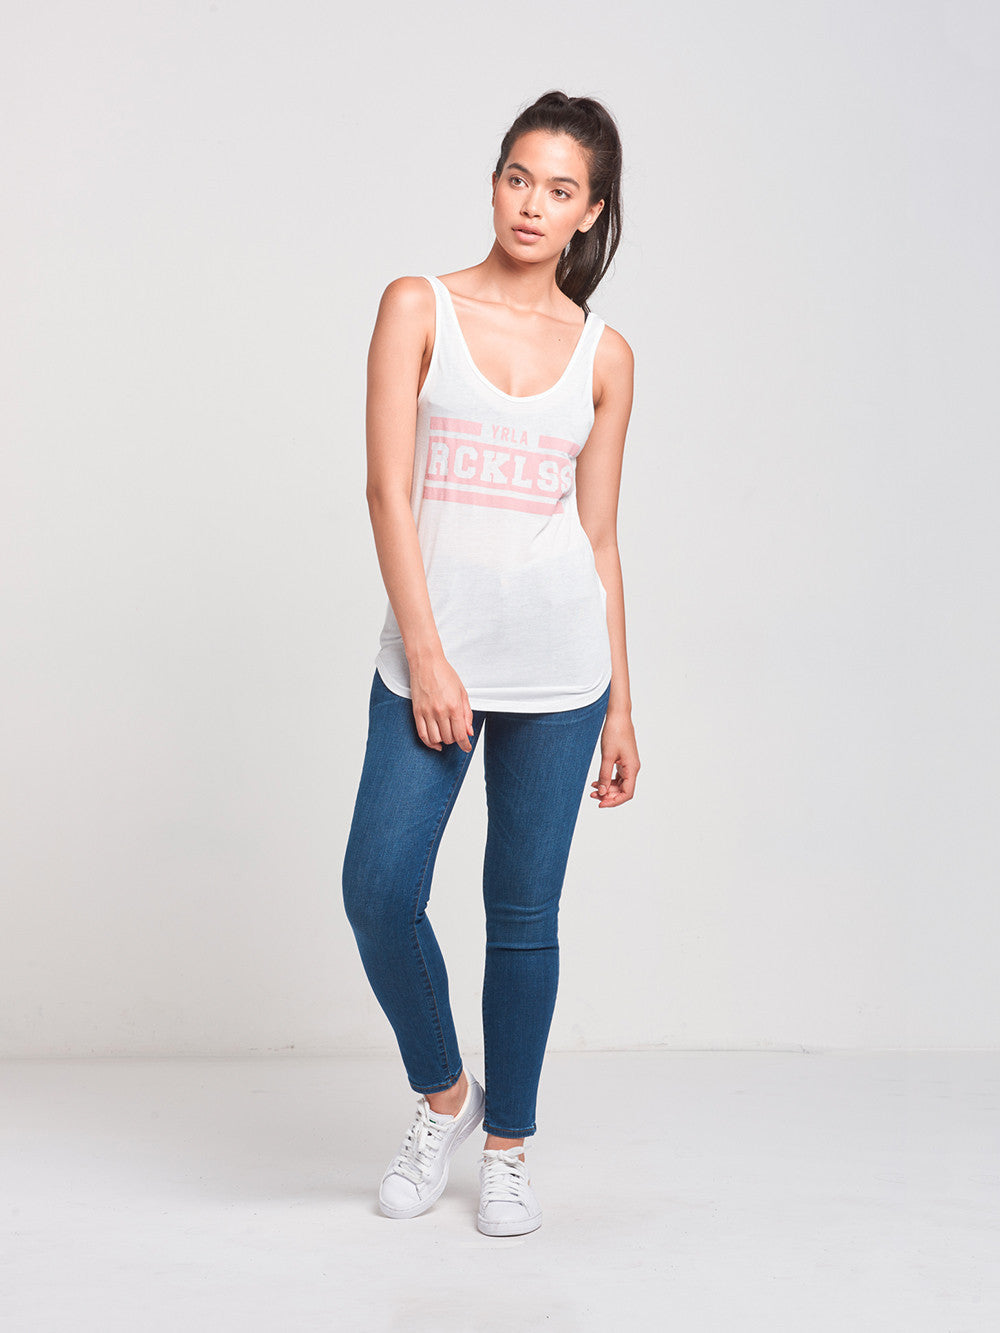 Reckless Girls Womens - Tops - Tanks Interfere Double Scoop Tank- White